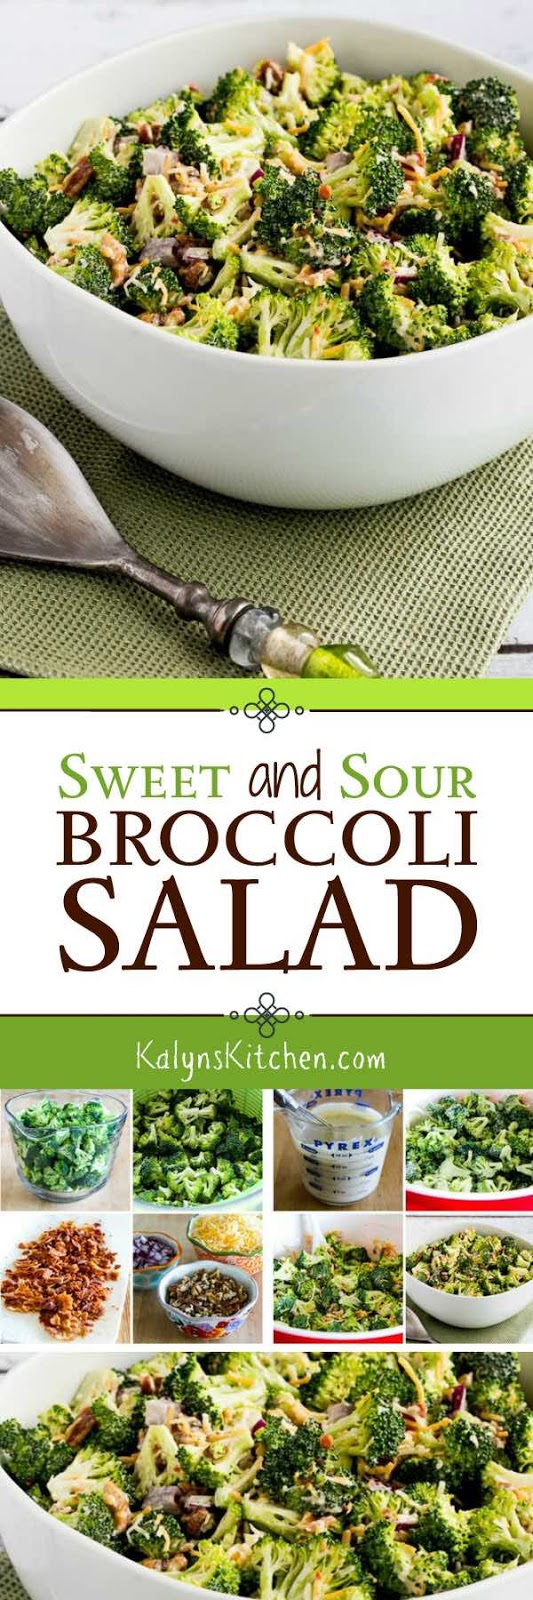 Sweet and Sour Broccoli Salad - Kalyn's Kitchen